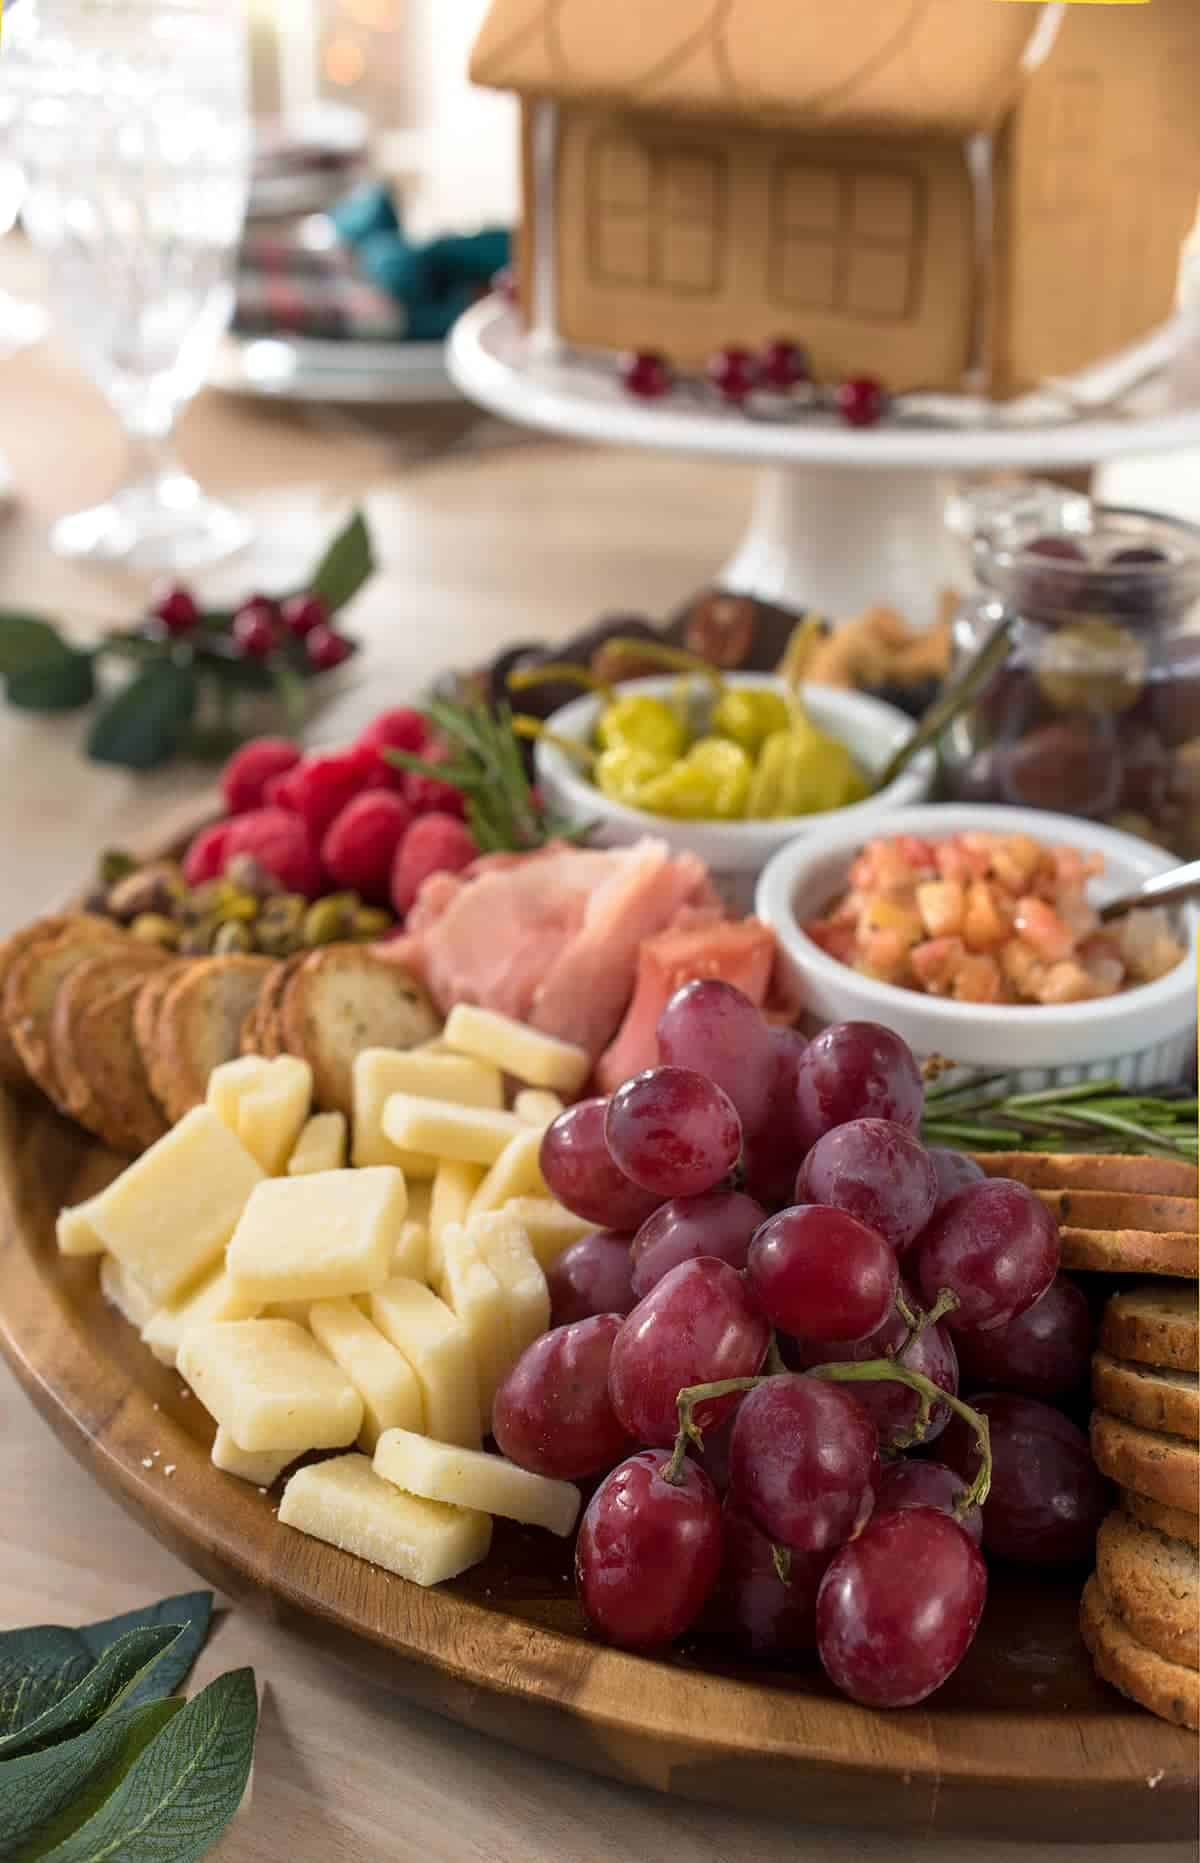 Full charcuterie board on display on dining room table. Close up of grapes, cheddar cheese, bagel crisps, pistachios and bruschetta. Crystal goblet and gingerbread house in background.